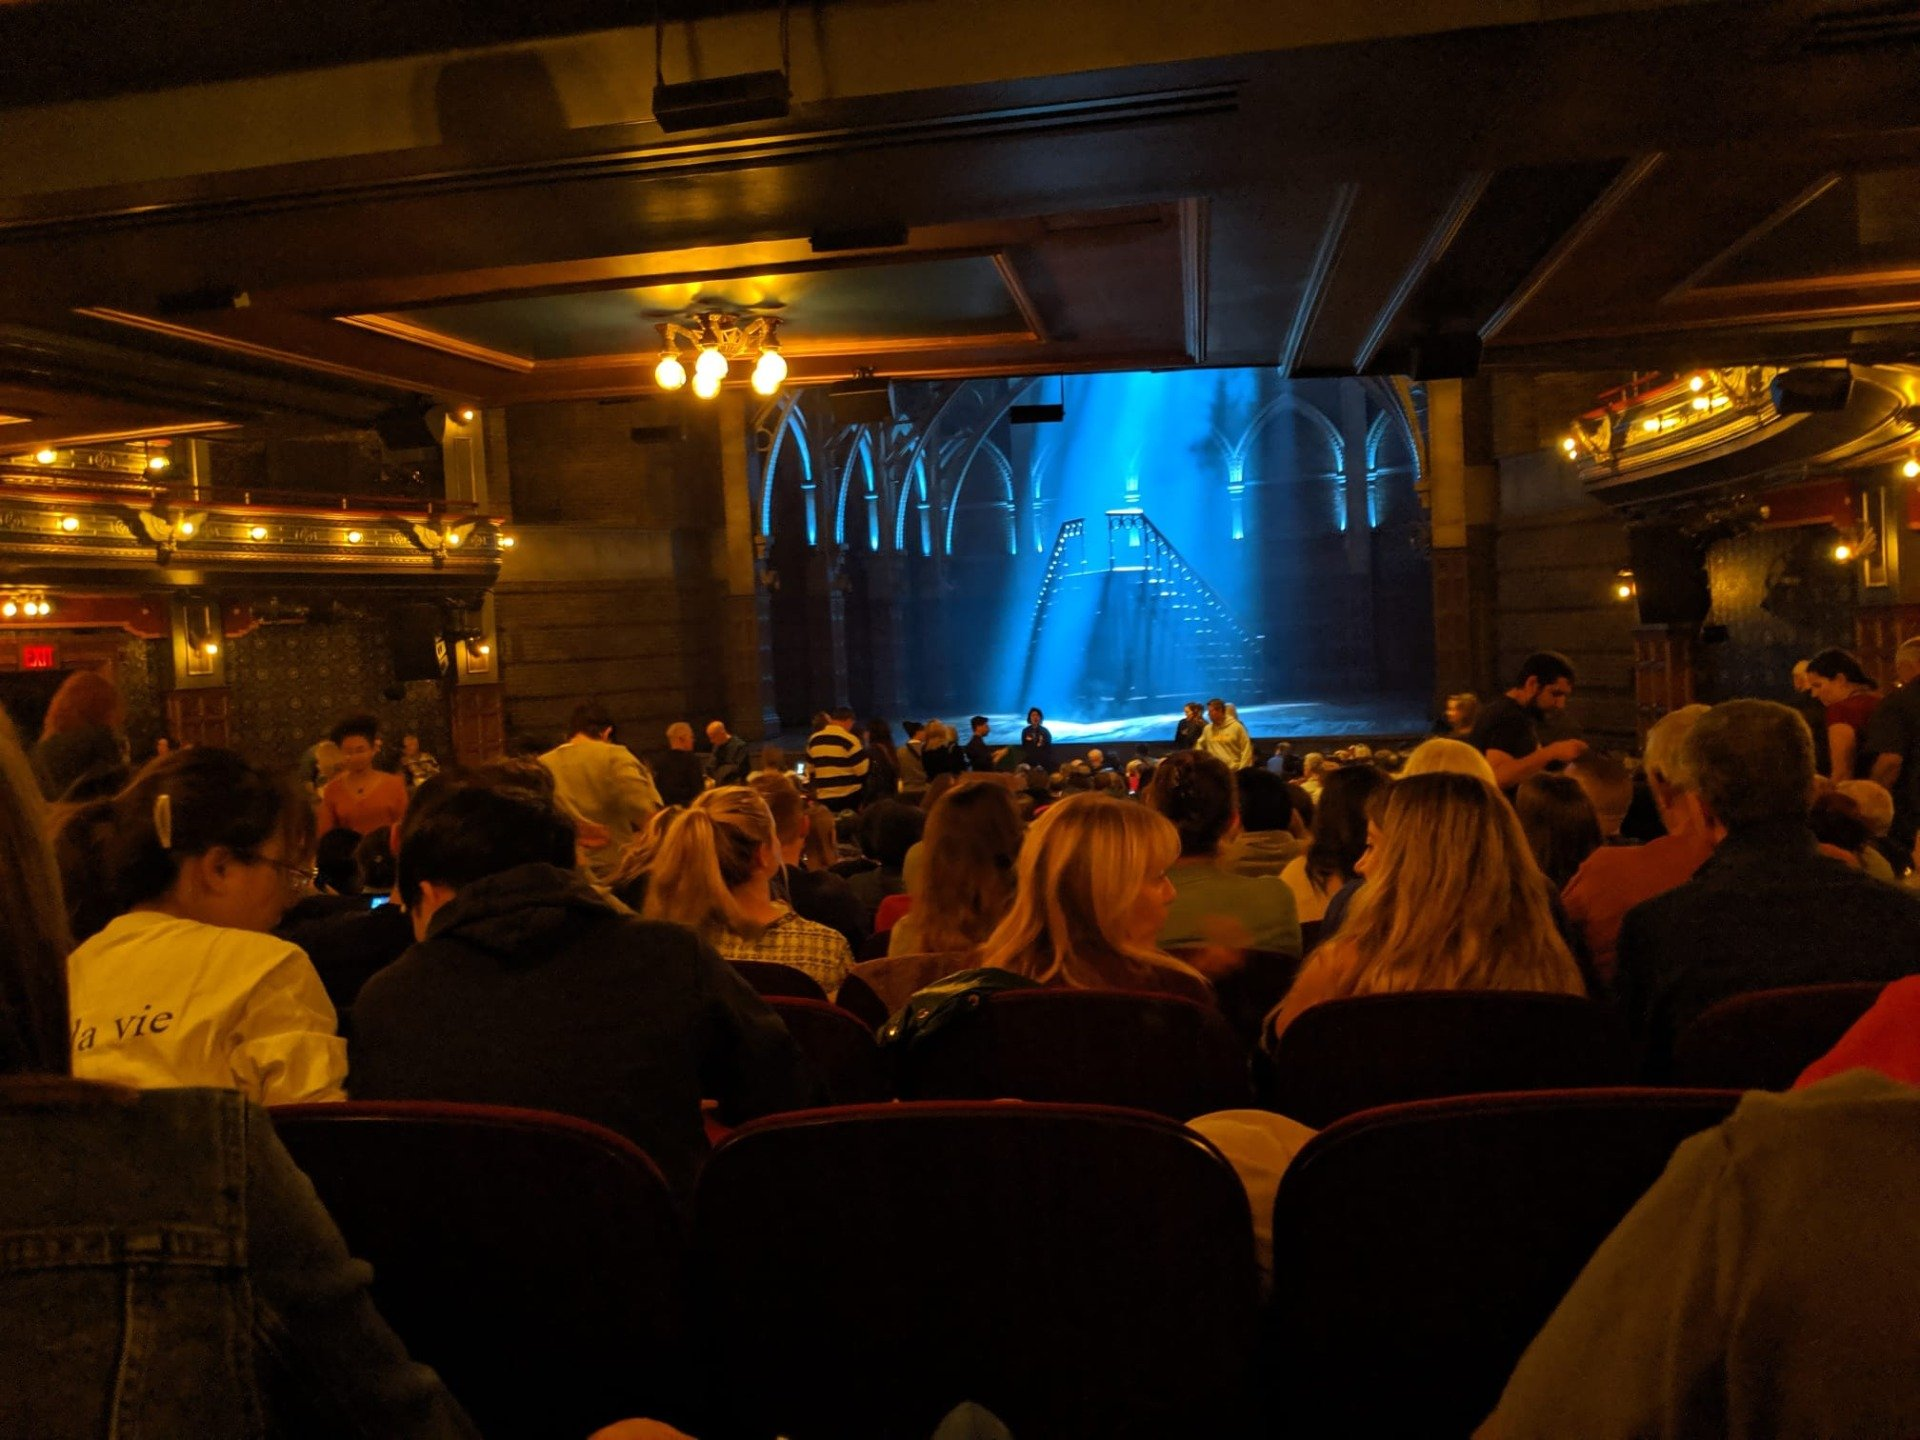 Lyric Theatre Section orchestra R Row Y Seat 24